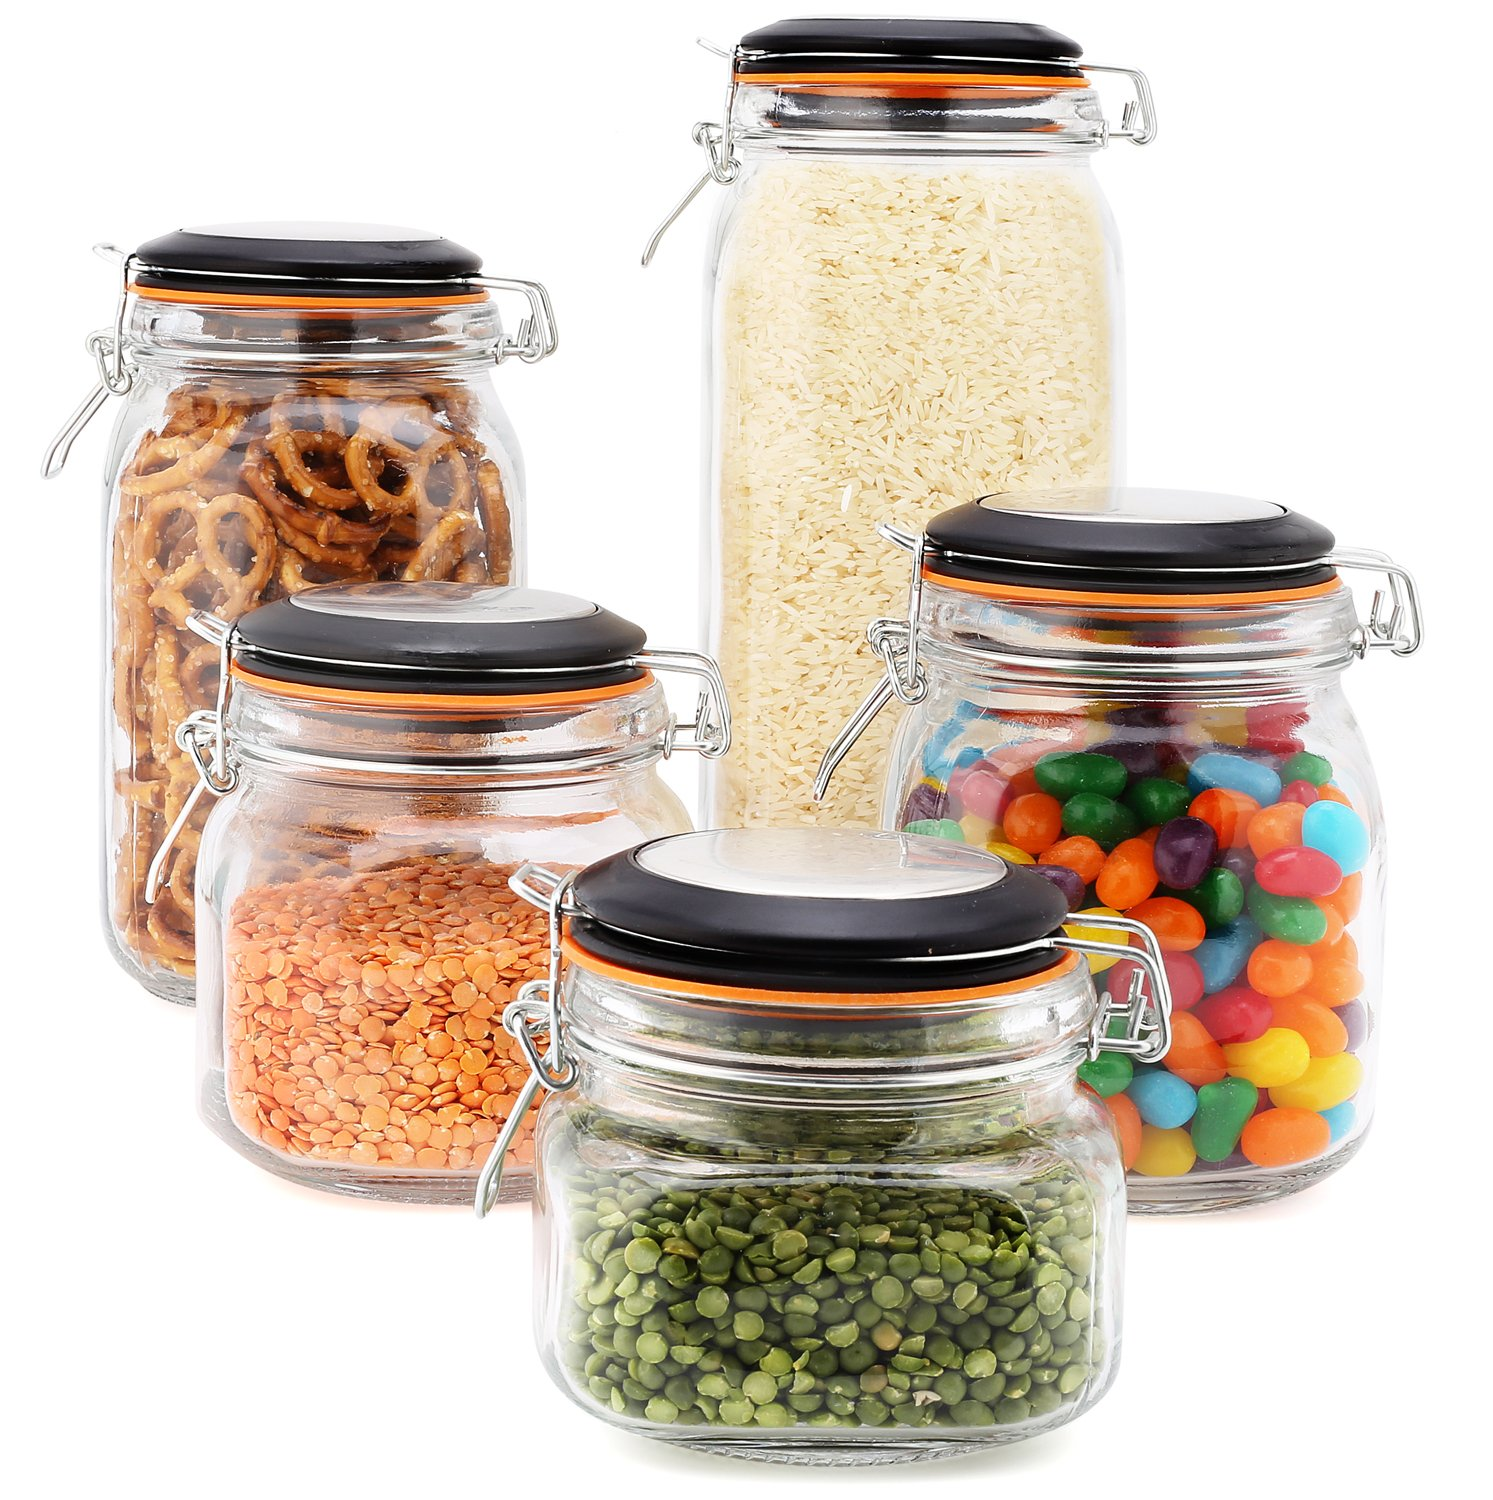 EatNeat Set of 5 Airtight Glass Food Storage Canisters with Bail & Trigger Clamp Lids: 68/51/ 34/27/ 17 oz. (Black Lid)